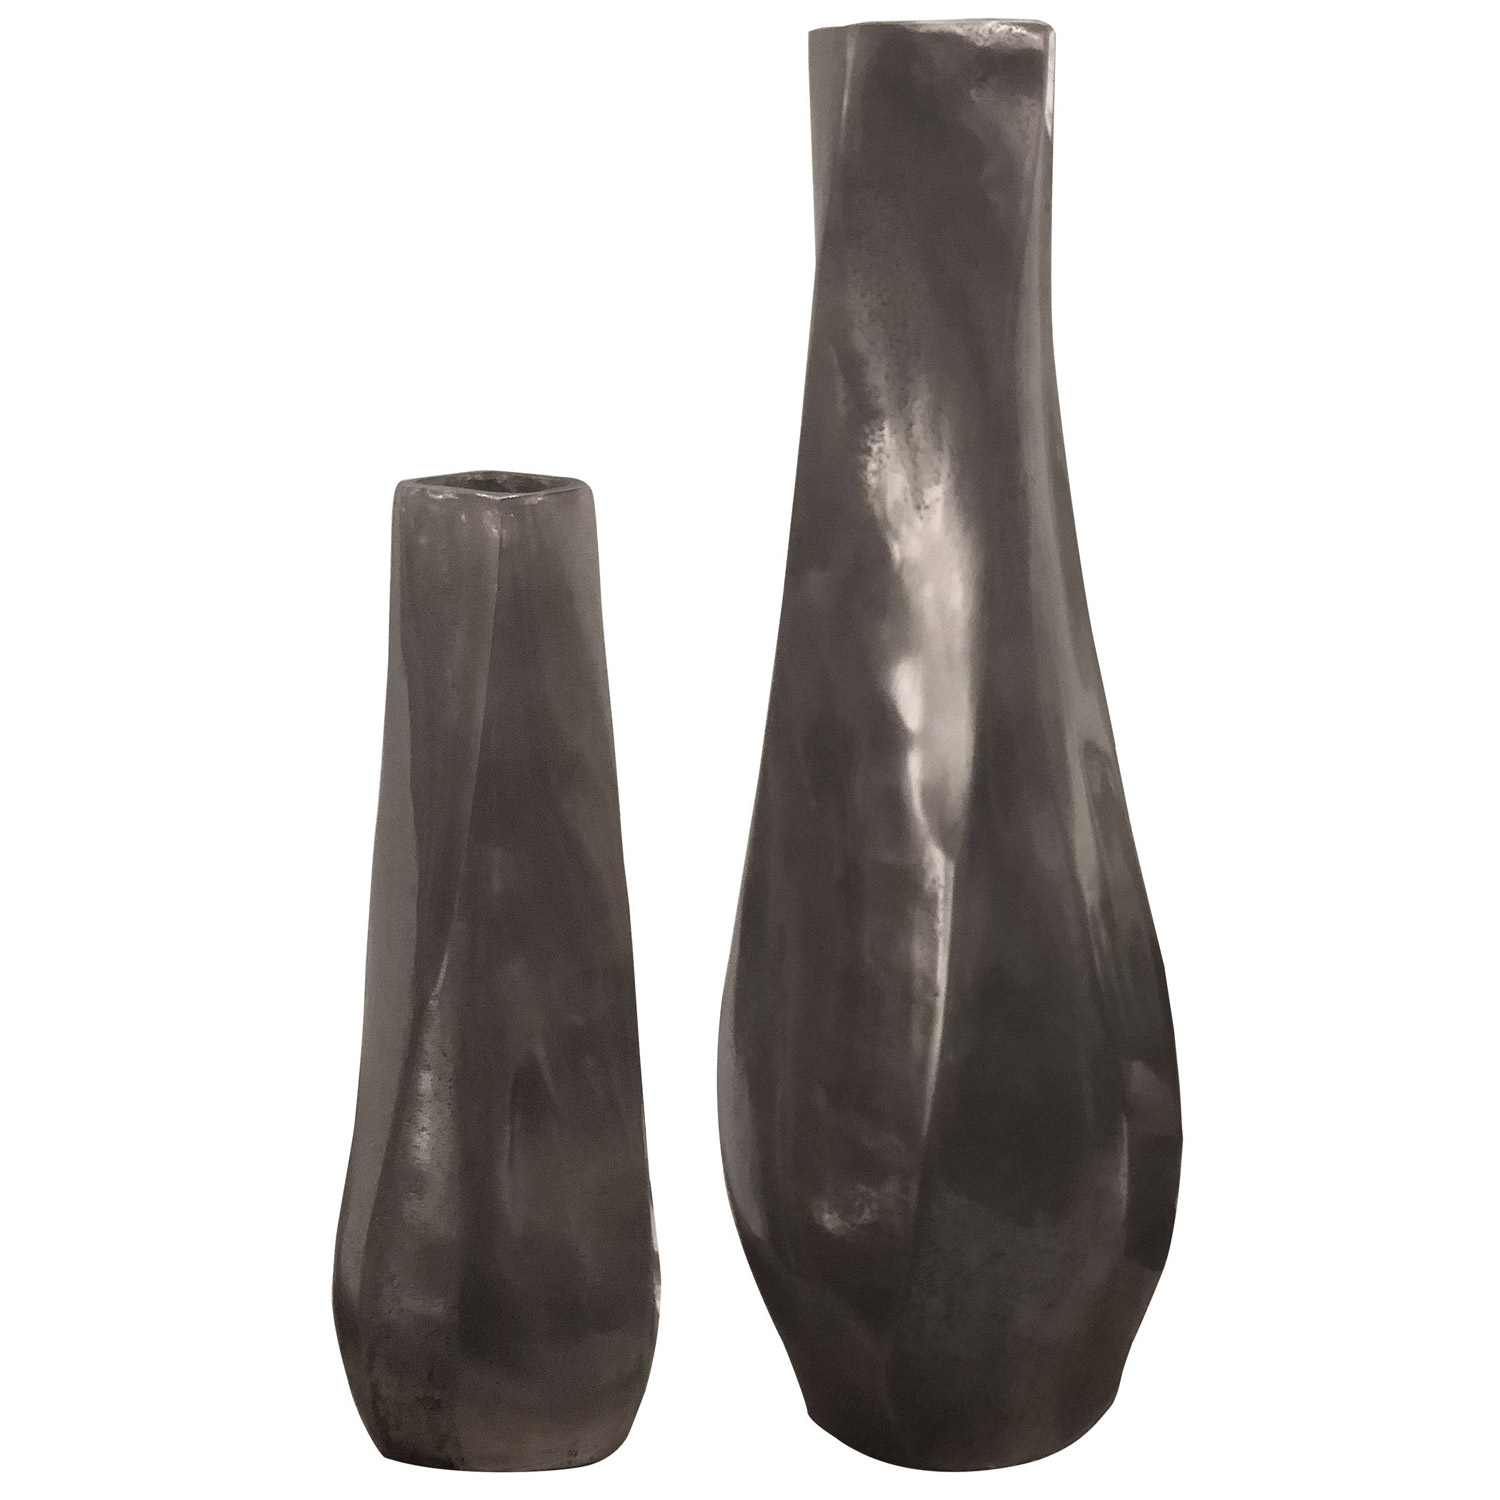 Uttermost Noa Dark Nickel Vases - Set of 2